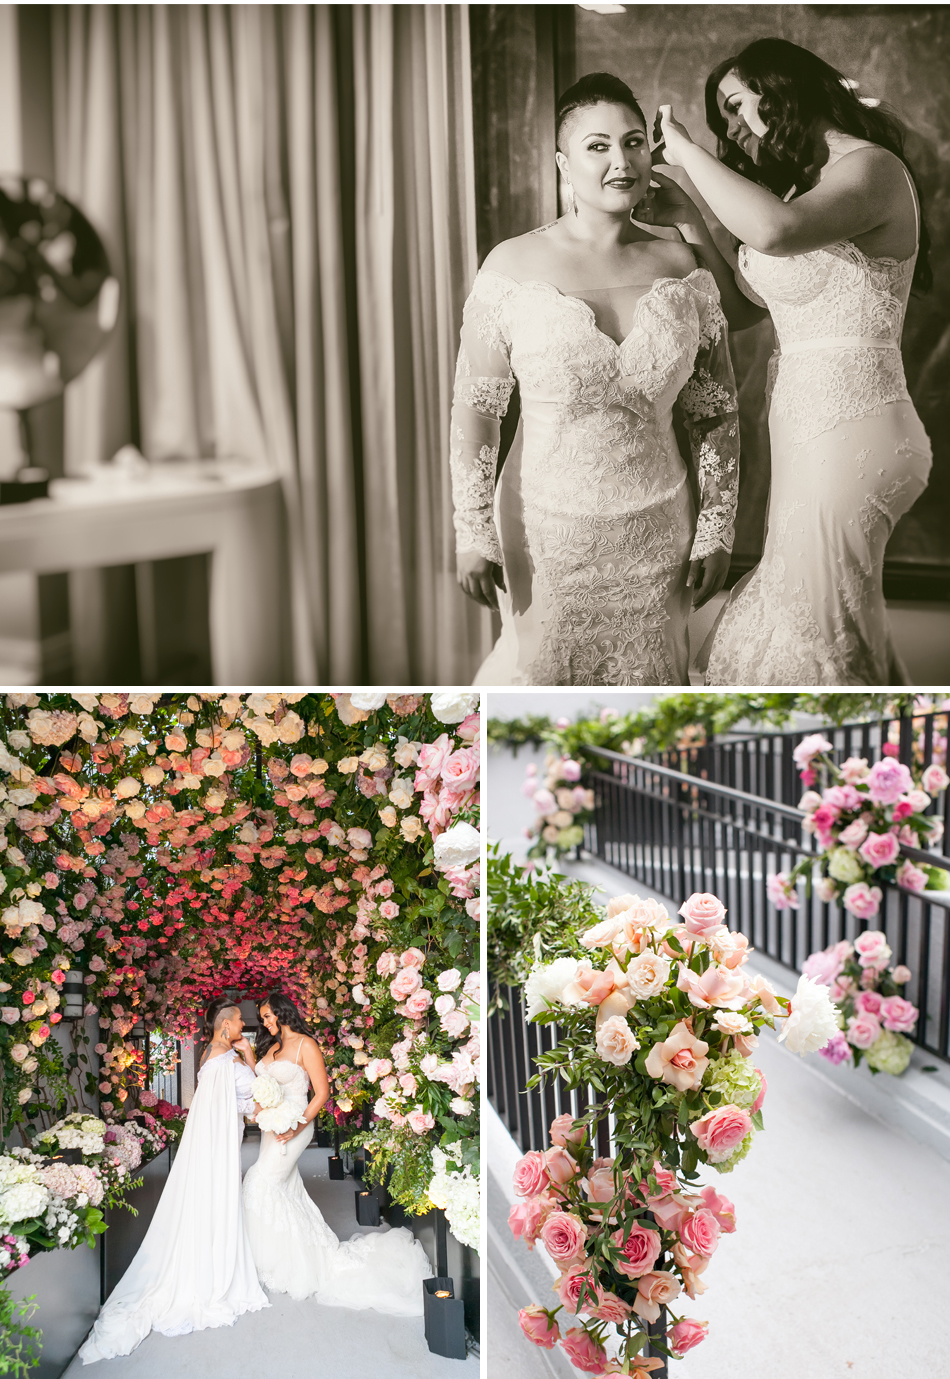 internationaleventcompany.com | International Event Company Los Angeles Wedding Planner and Designer | Weddings at The London West Hollywood | Luxury Event Planners in Southern California _.jpg